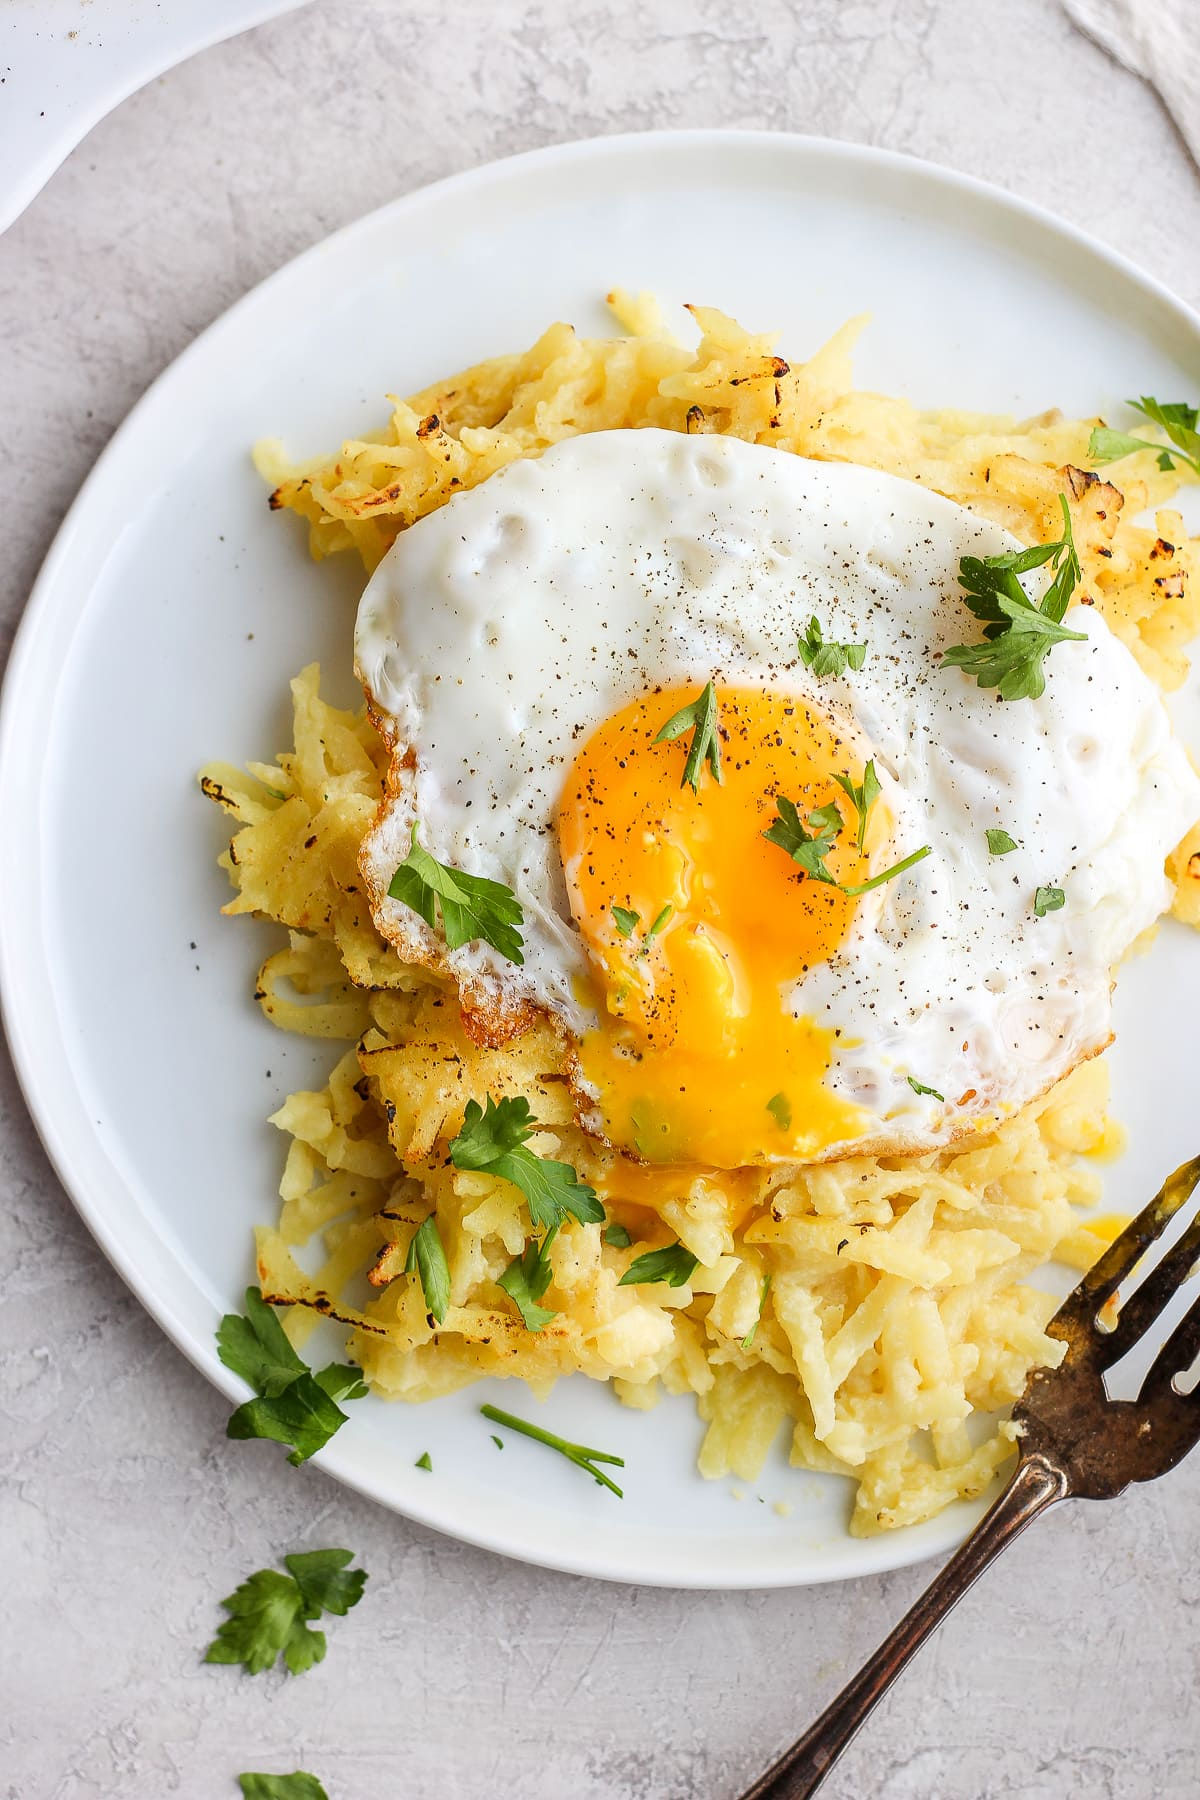 Dairy Free Cheesy Hashbrown Bake on a plate with an egg on top.